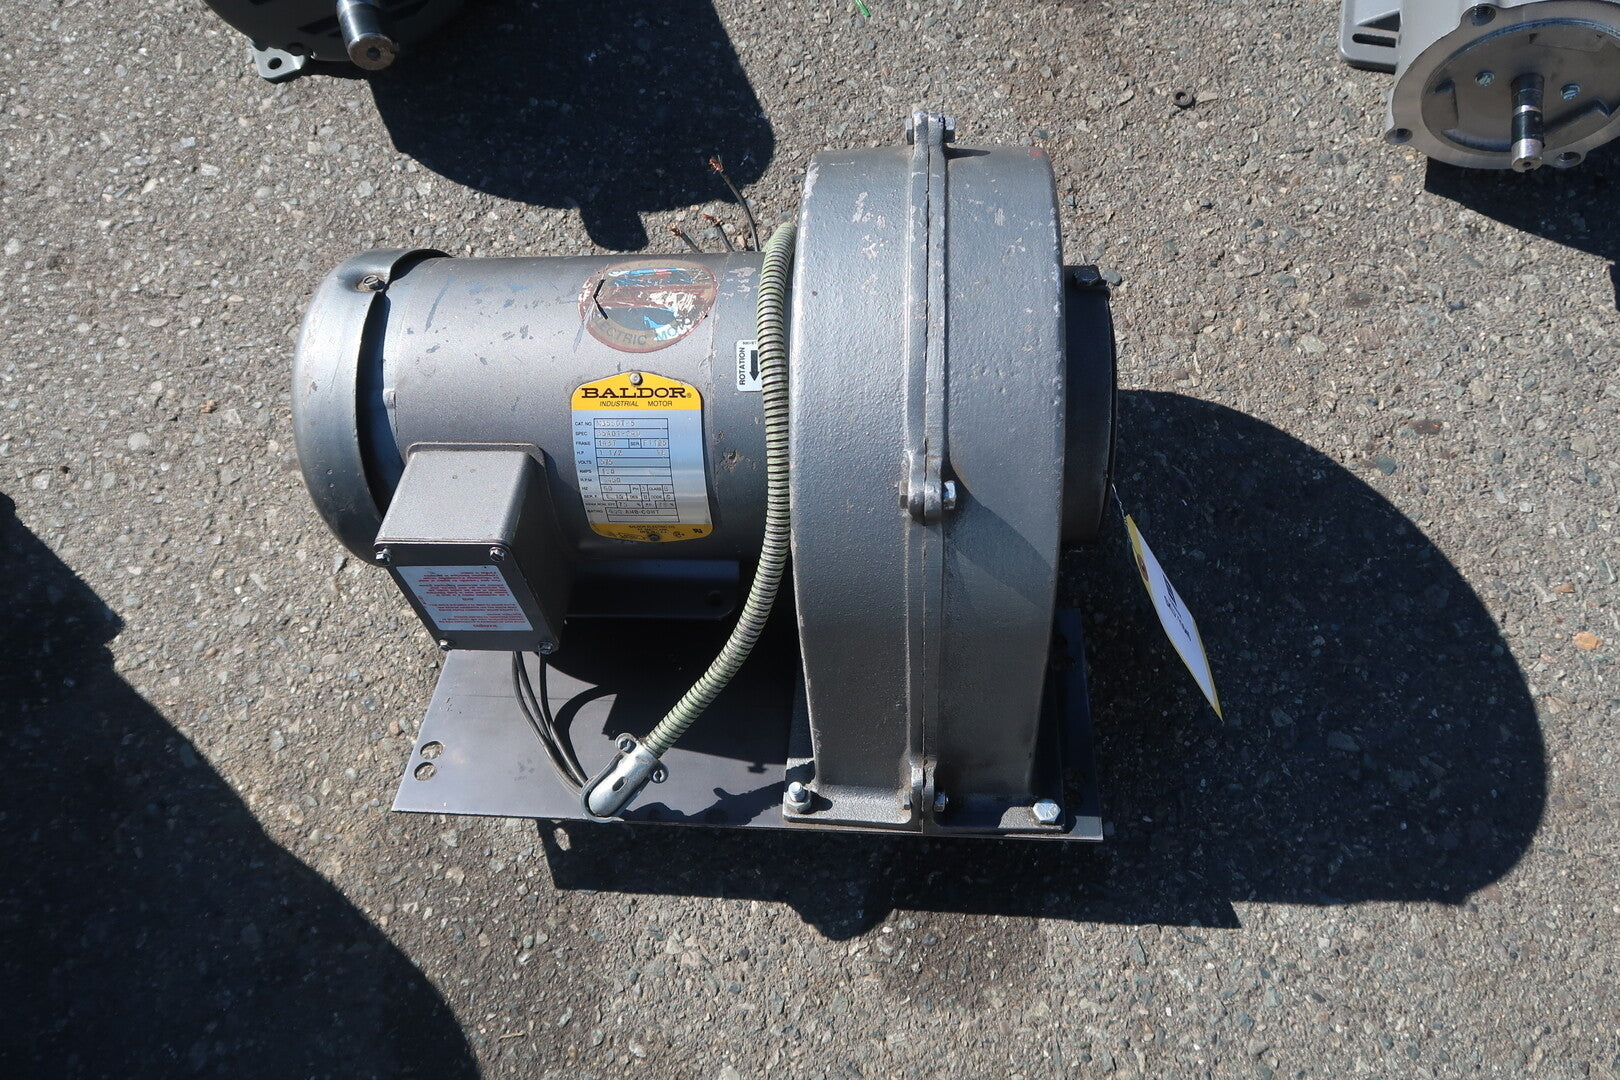 BALDOR 1.5 Hp Electric Motor